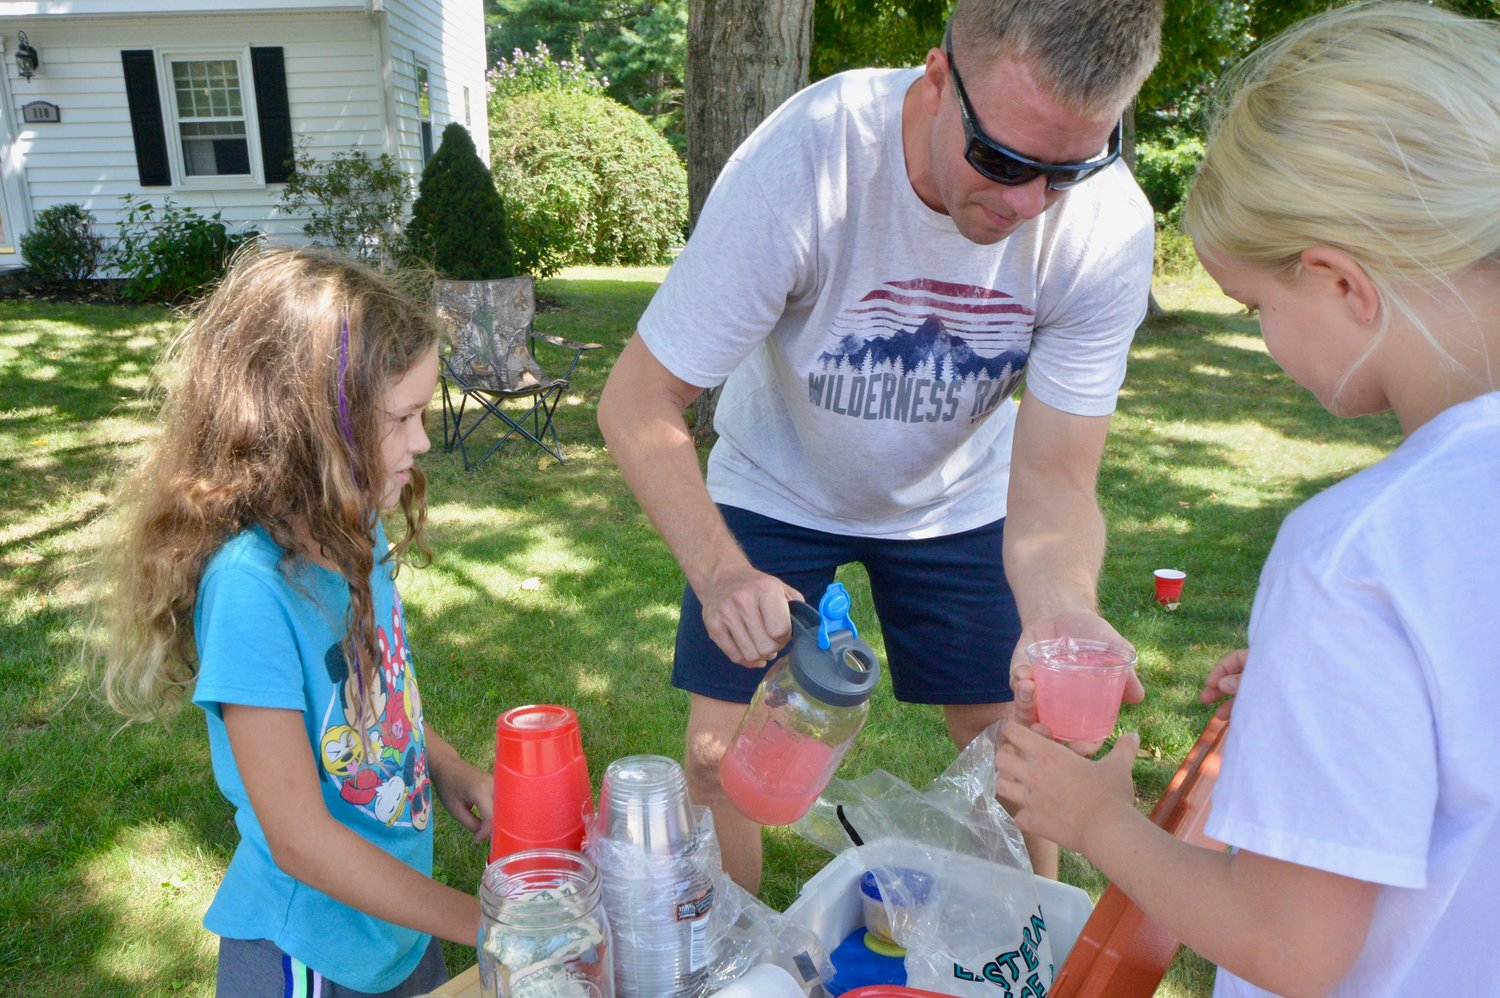 Aaron Schaub hands his daughter, Gwen, a cup of lemonade for a customer as helper Lexi Hahn looks on.